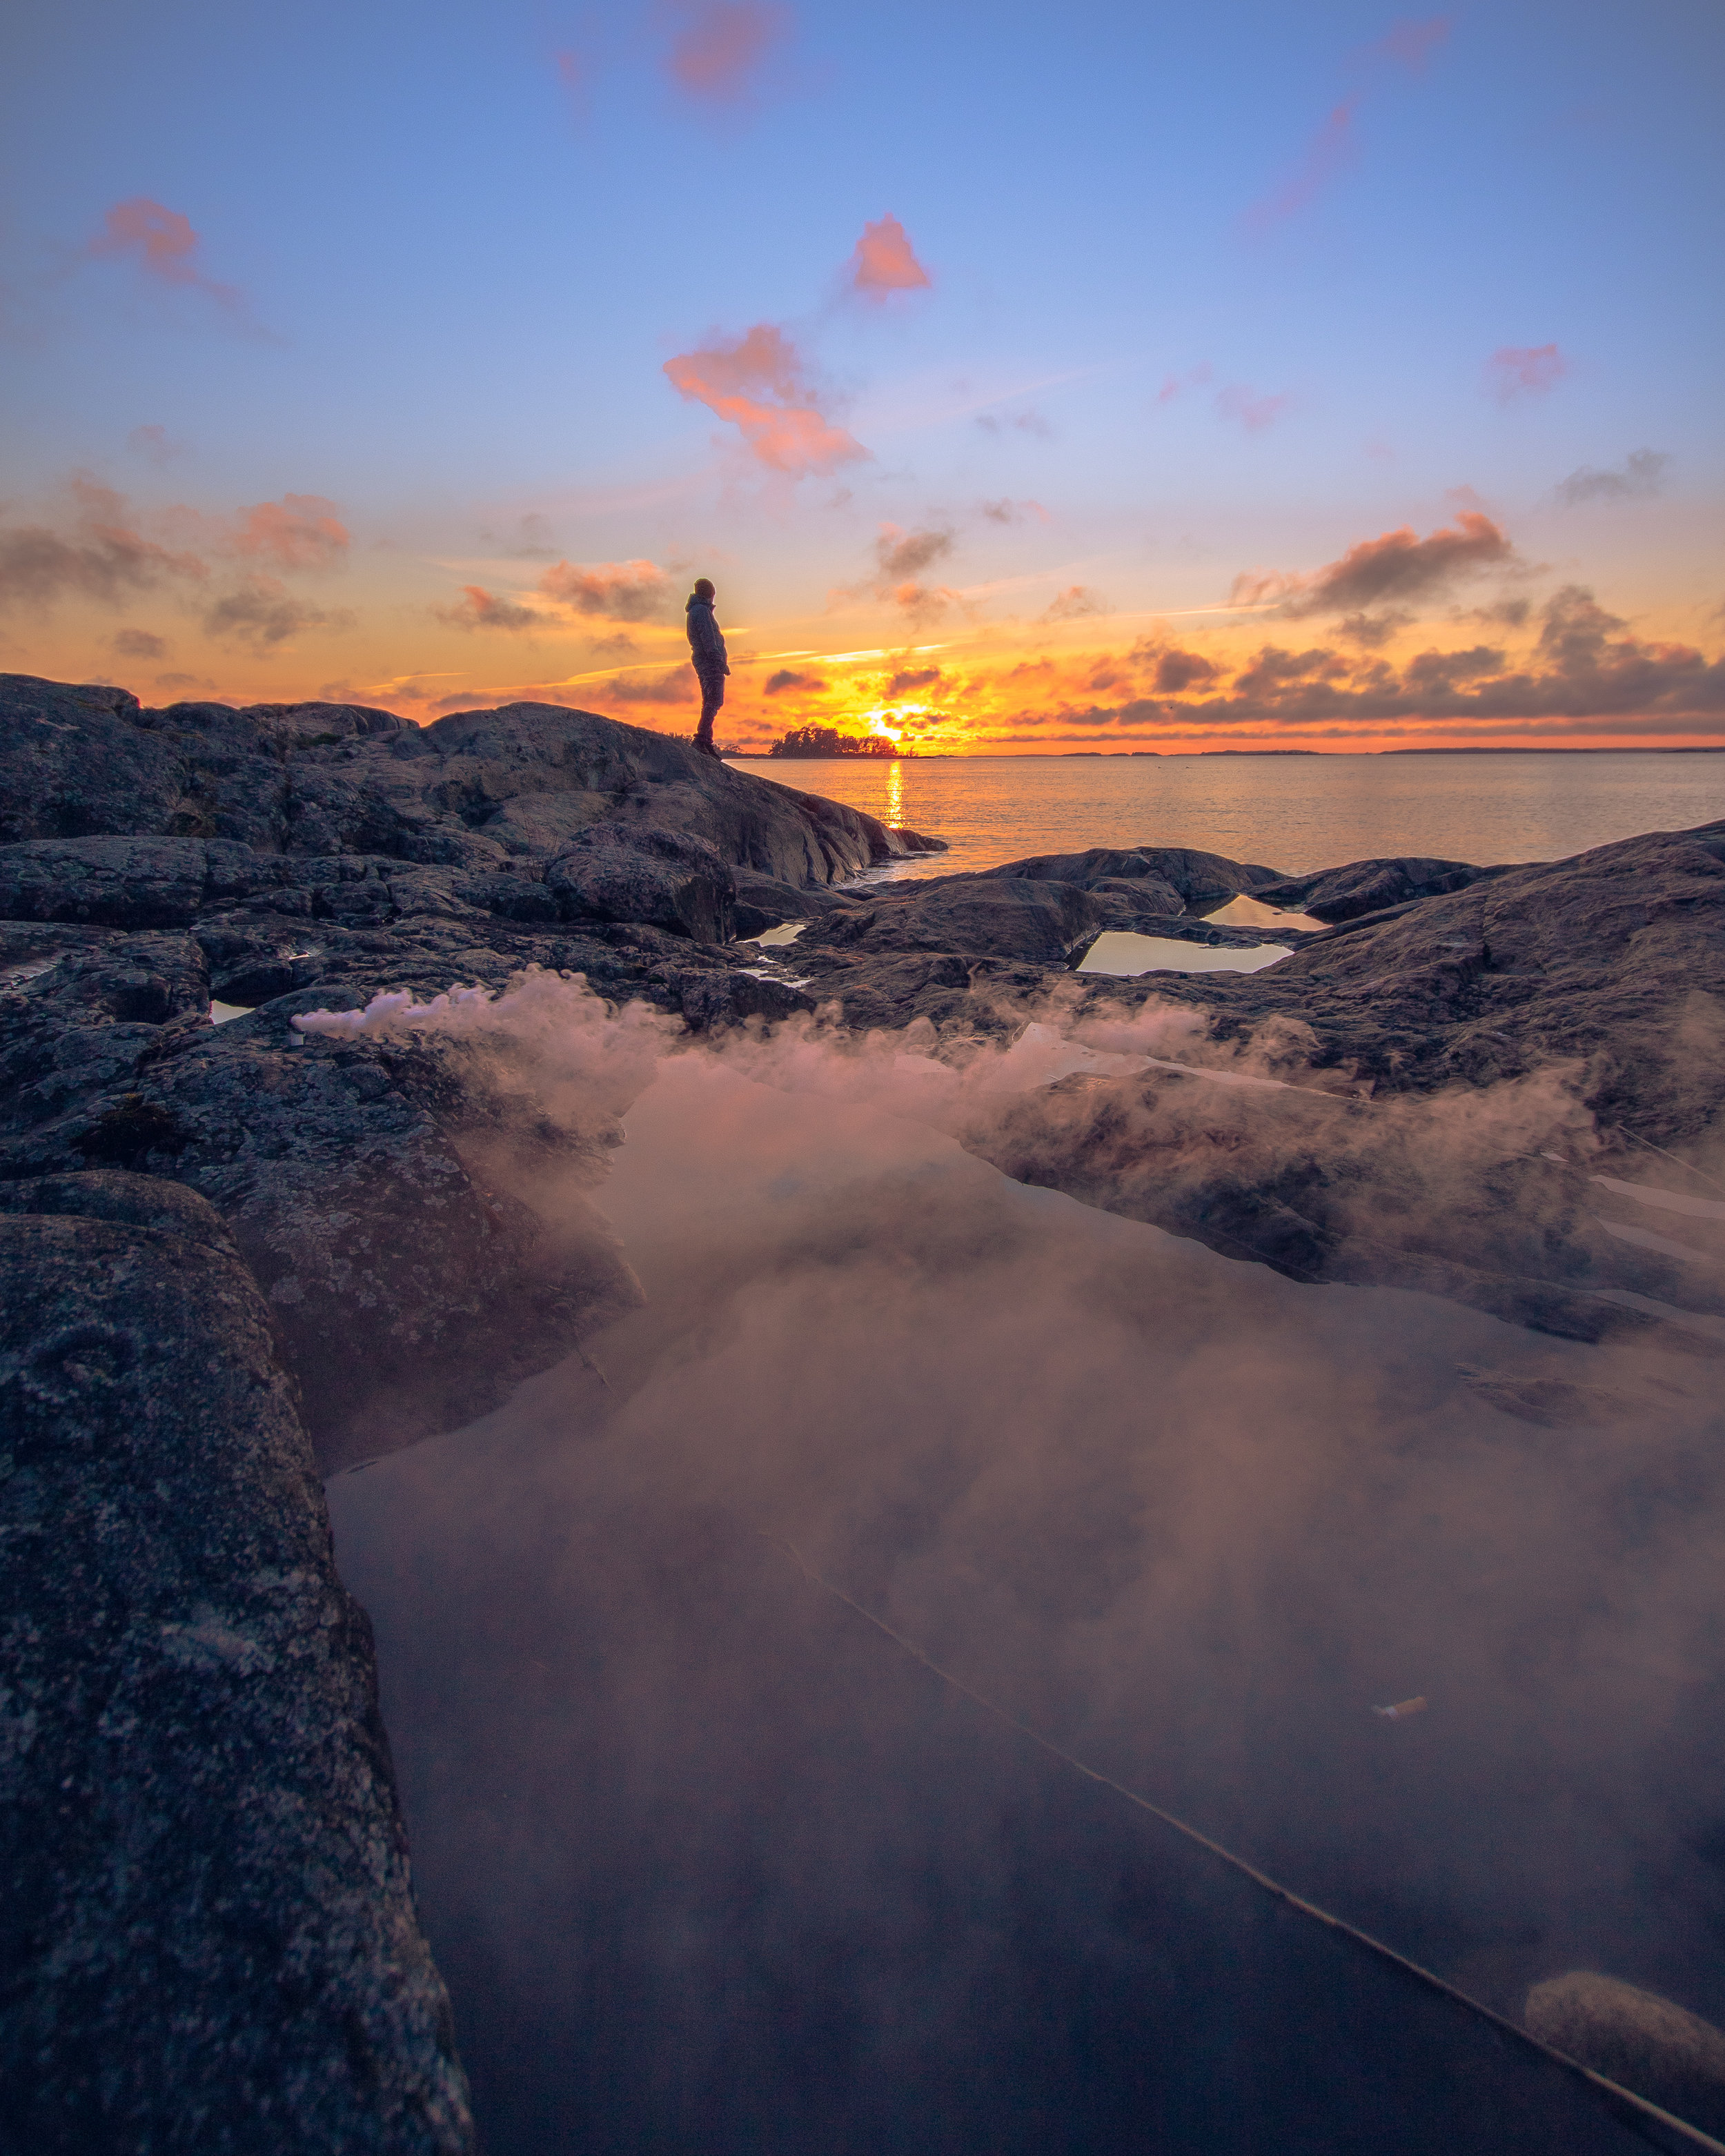 Trying some smoke at sunset, i get these ideas sometimes. Photo taken on the North side of Hangö